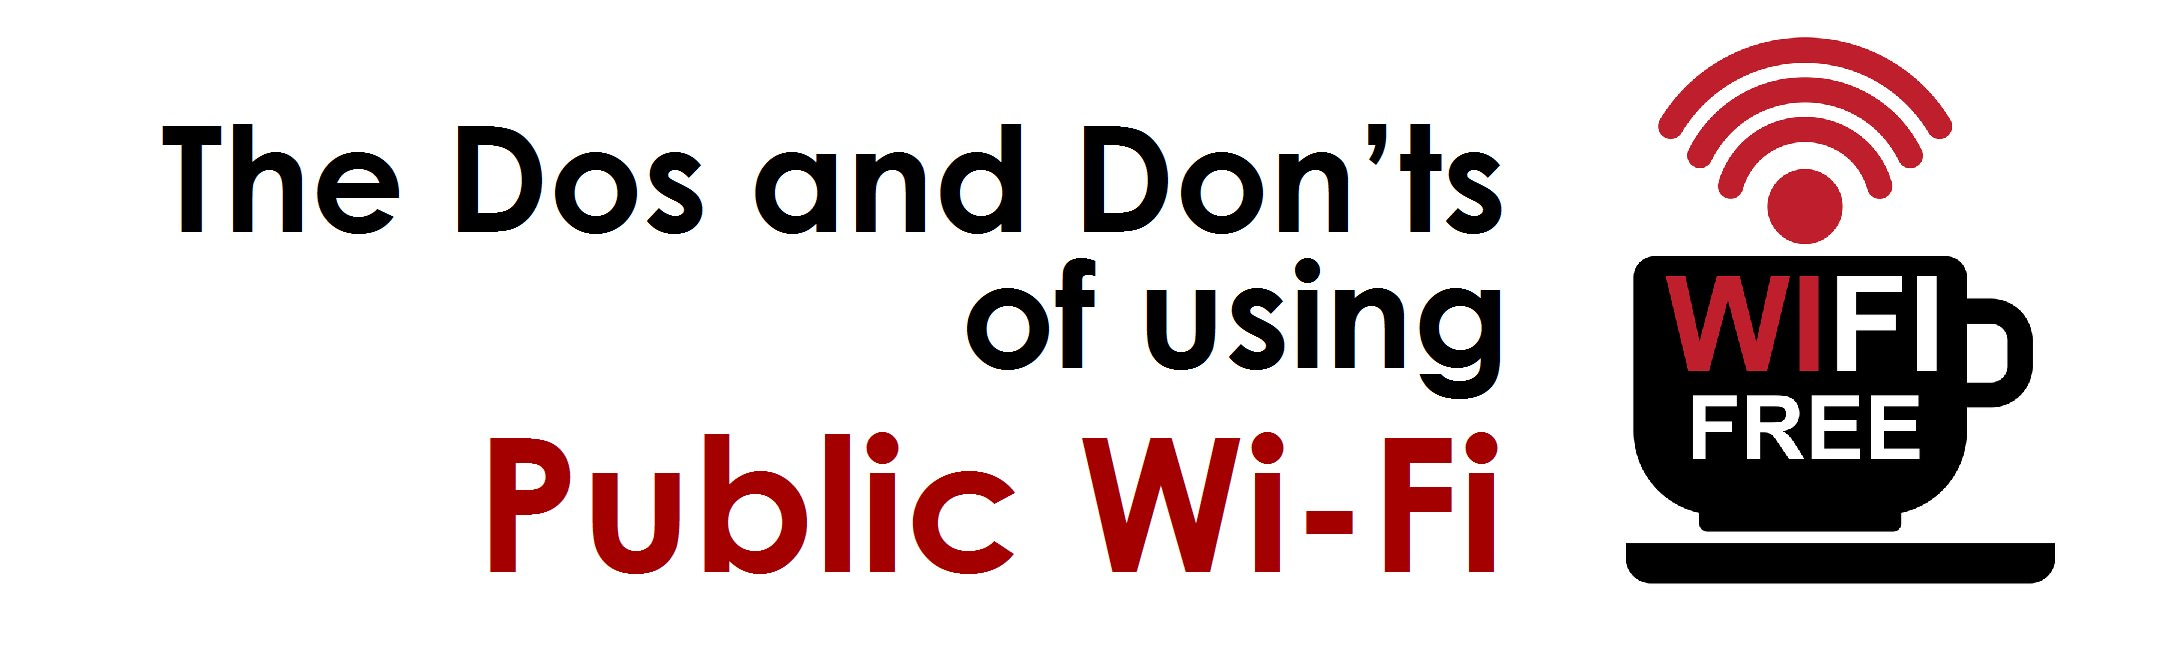 dos-and-dont-public-wifi-title